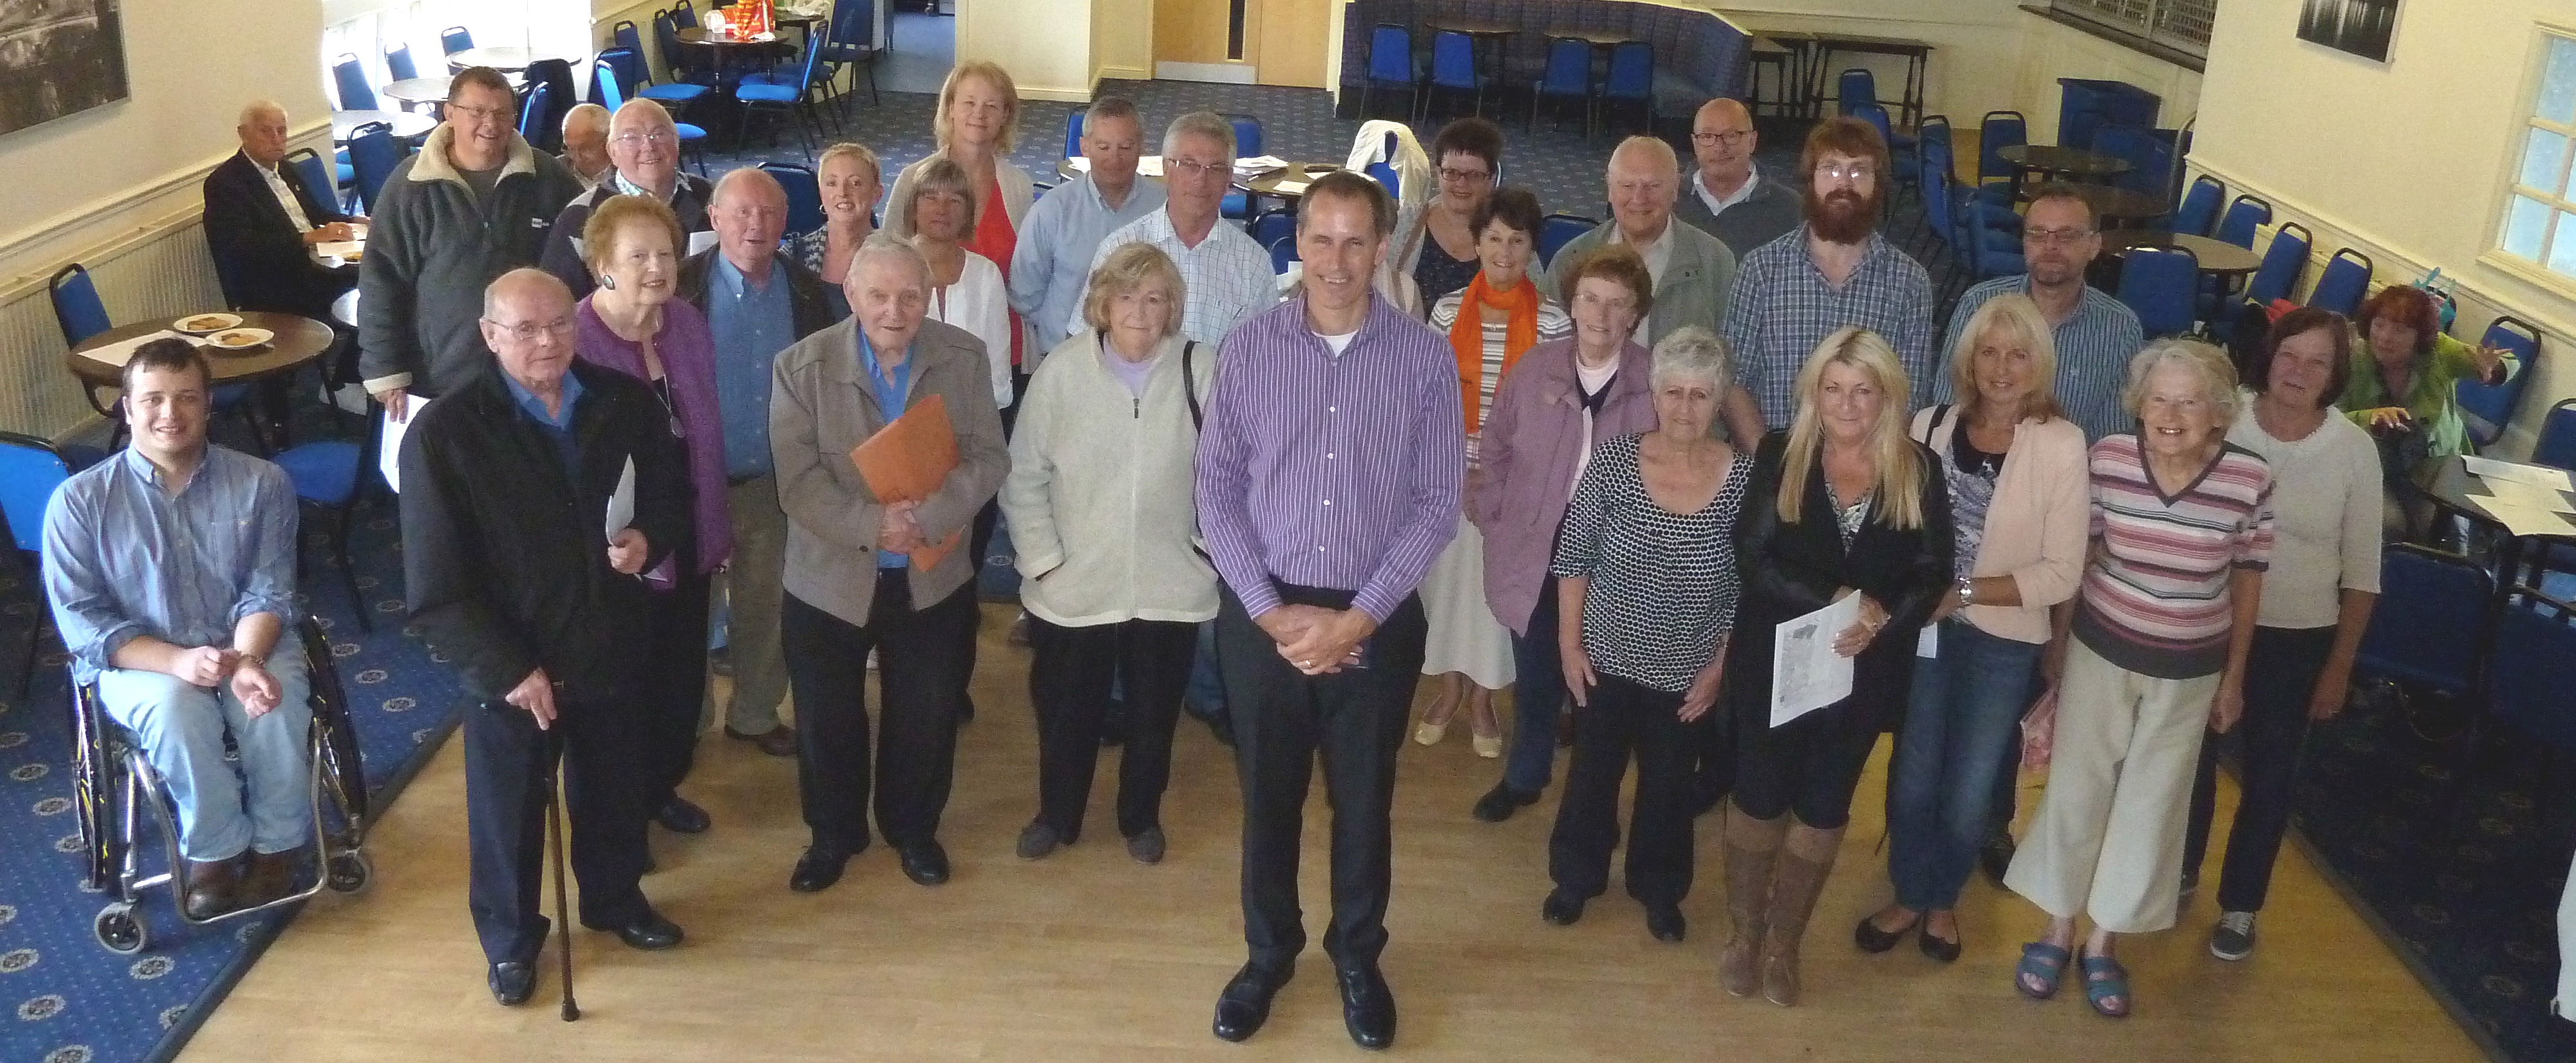 Labour MP Bill Esterson was joined by residents of Maghull and Lydiate at the People's Politics Inquiry event at Maghull Town Hall.